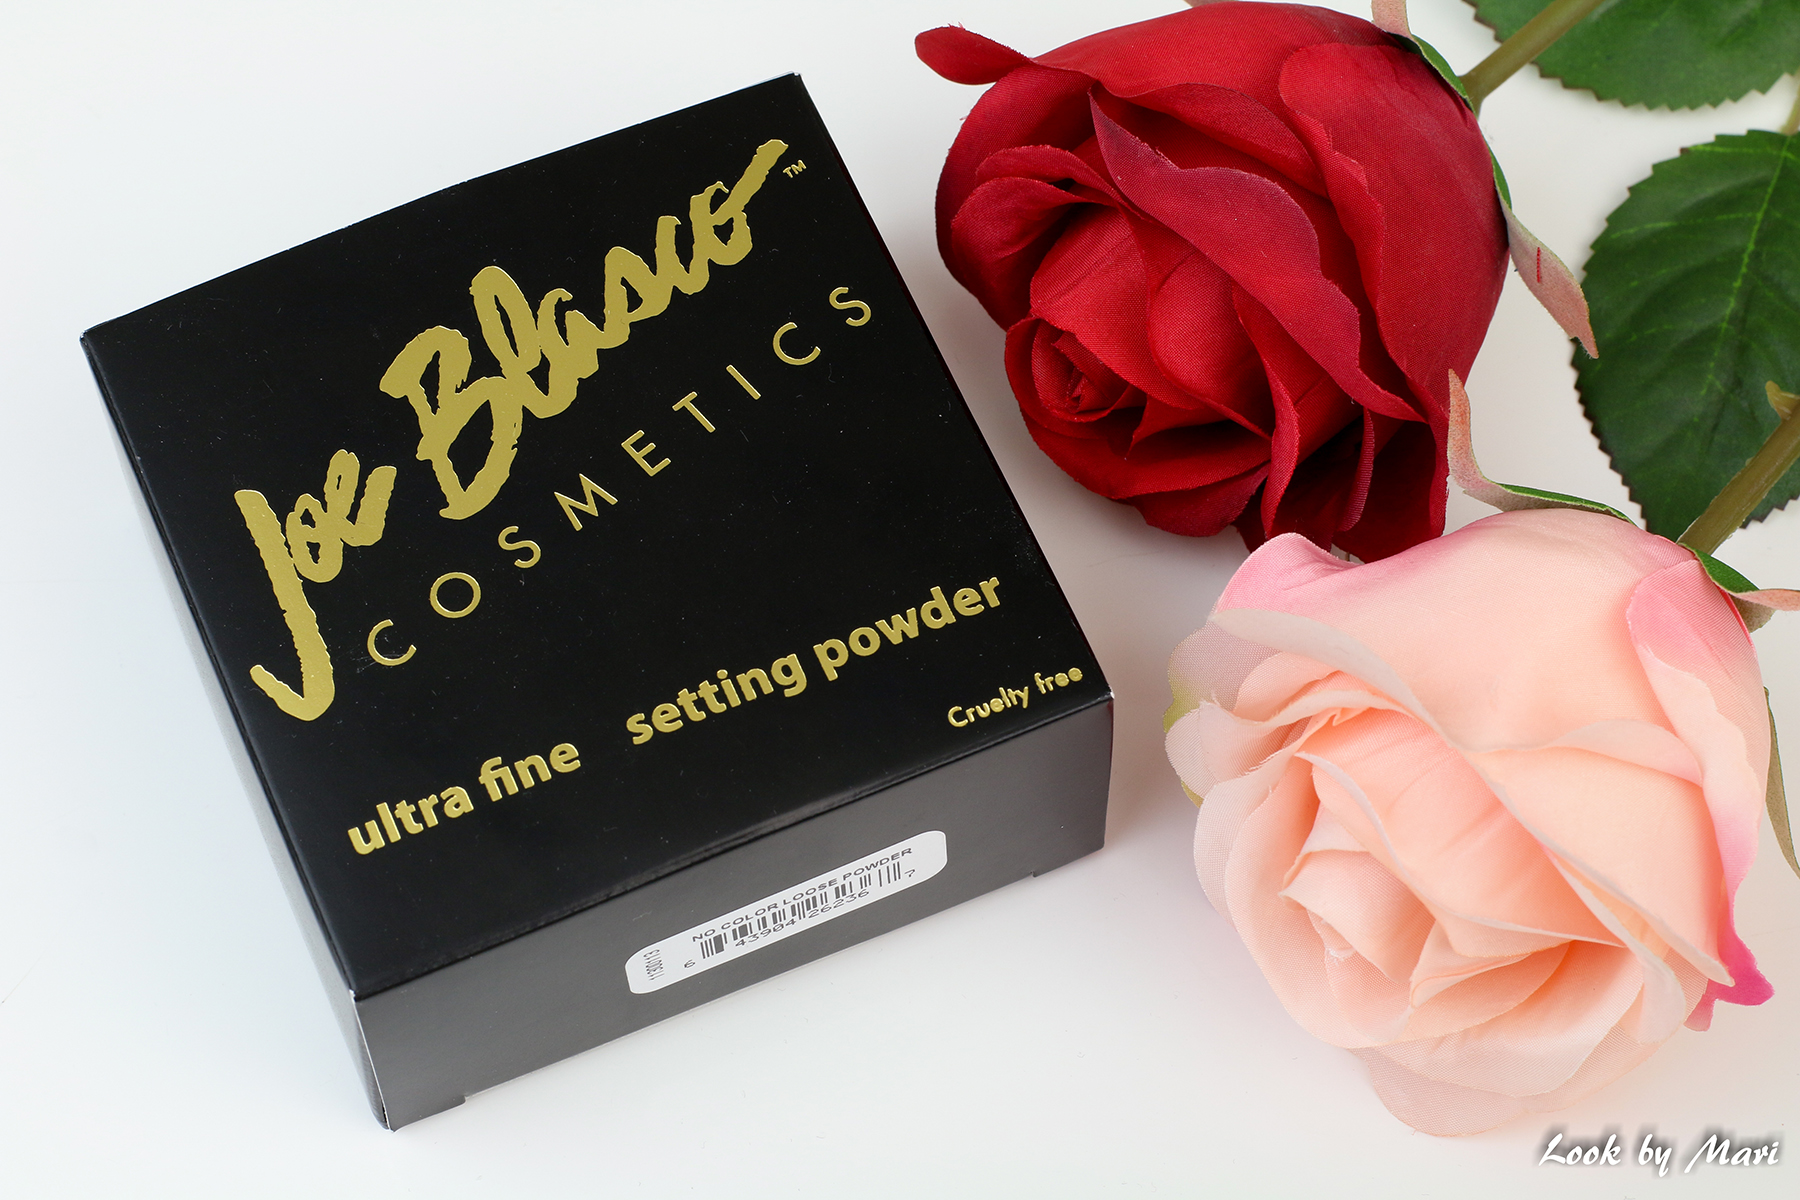 16 joe blasco ultra fine setting powder review swatches is it good